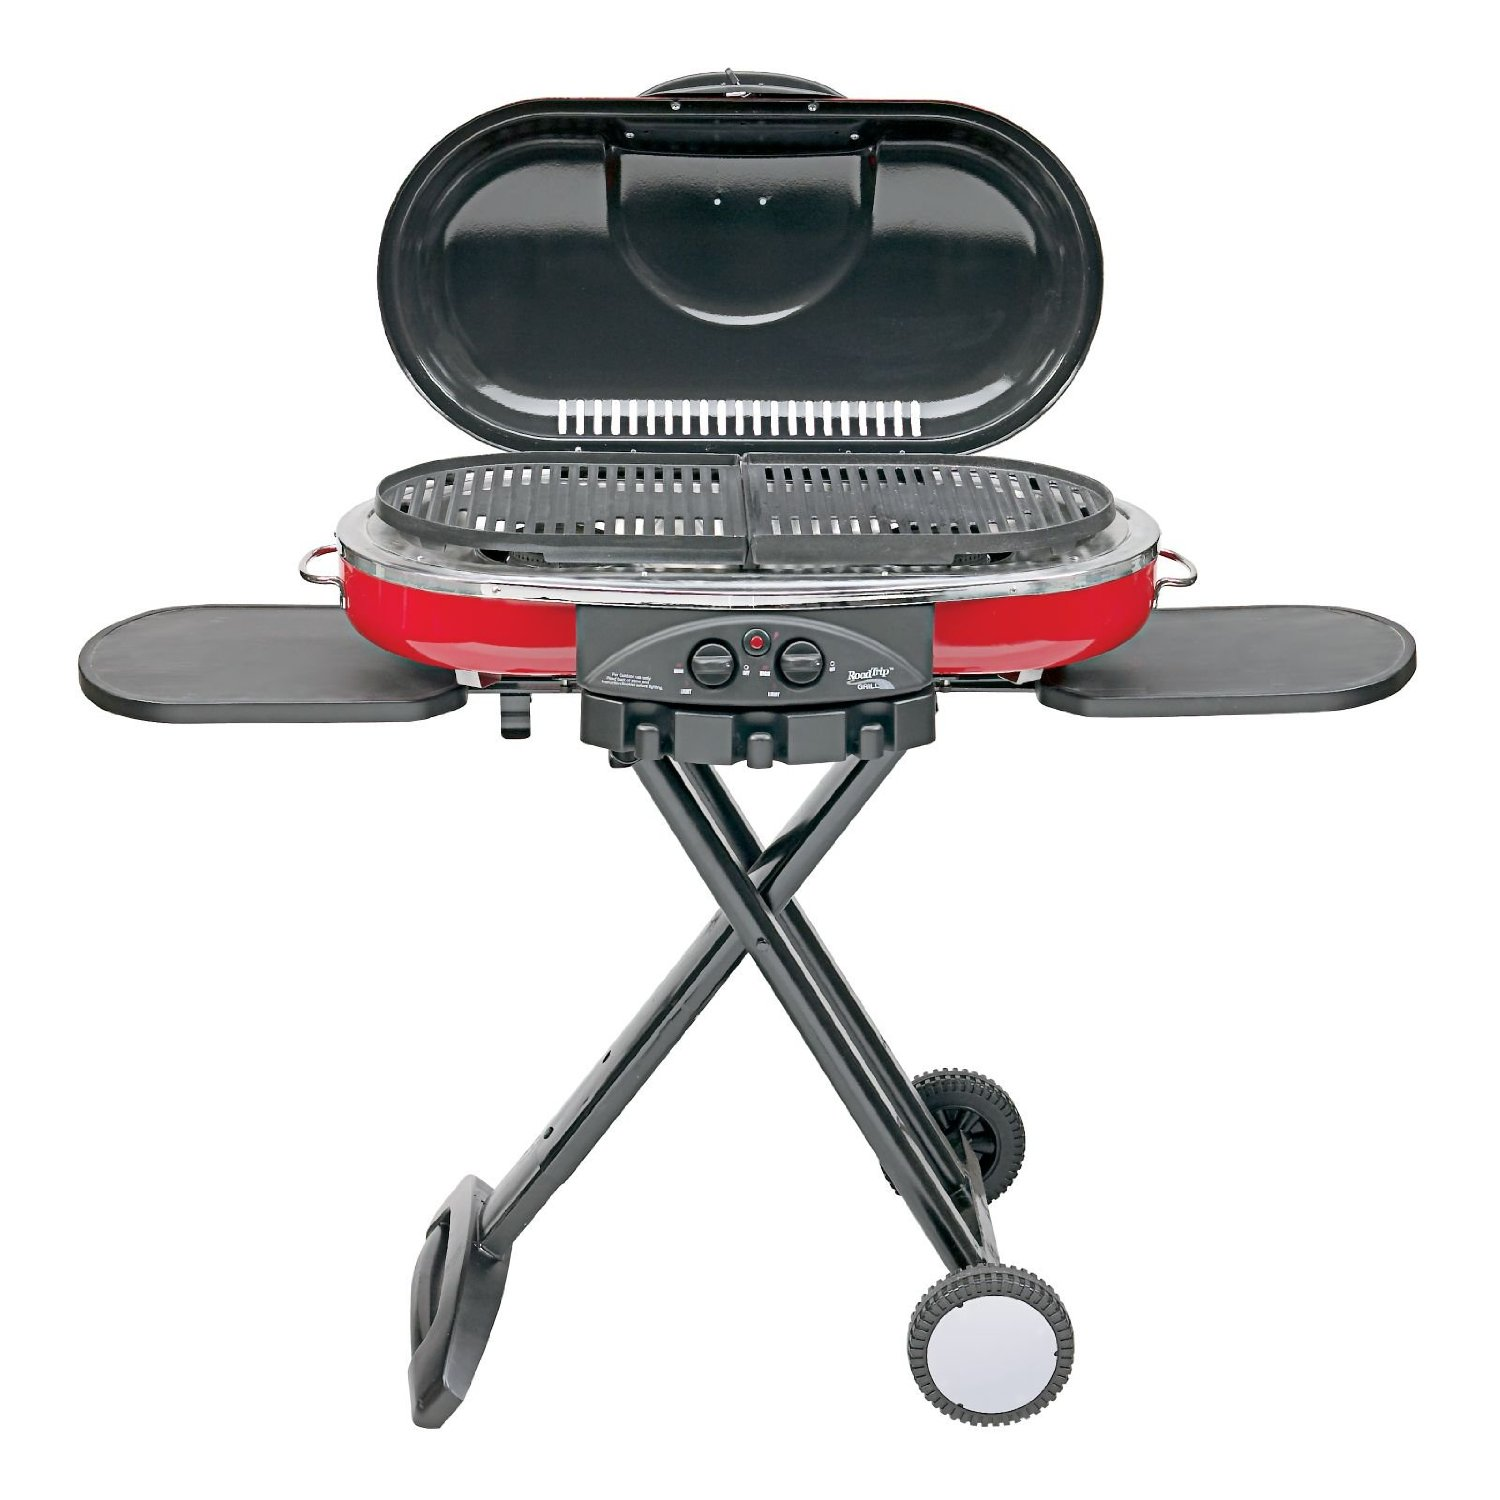 portable gas grills outdoor iron chef coleman roadtrip lxe propane grill side table canadian tire best review gold metal coffee glass top patio with umbrella hole nautical end